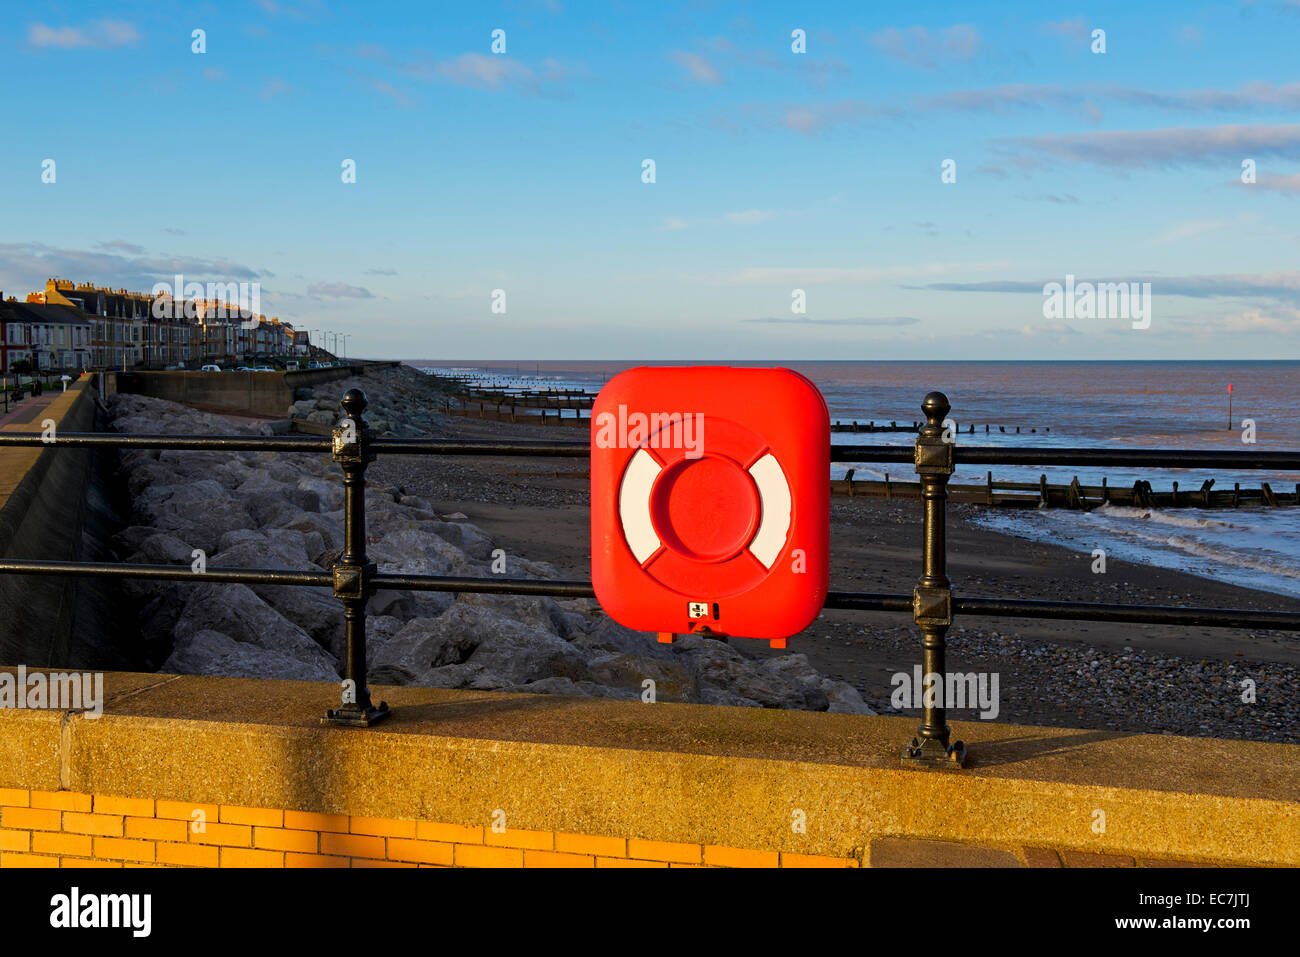 Lifebelt at Withernsea, East Yorkshire, England UK - Stock Image